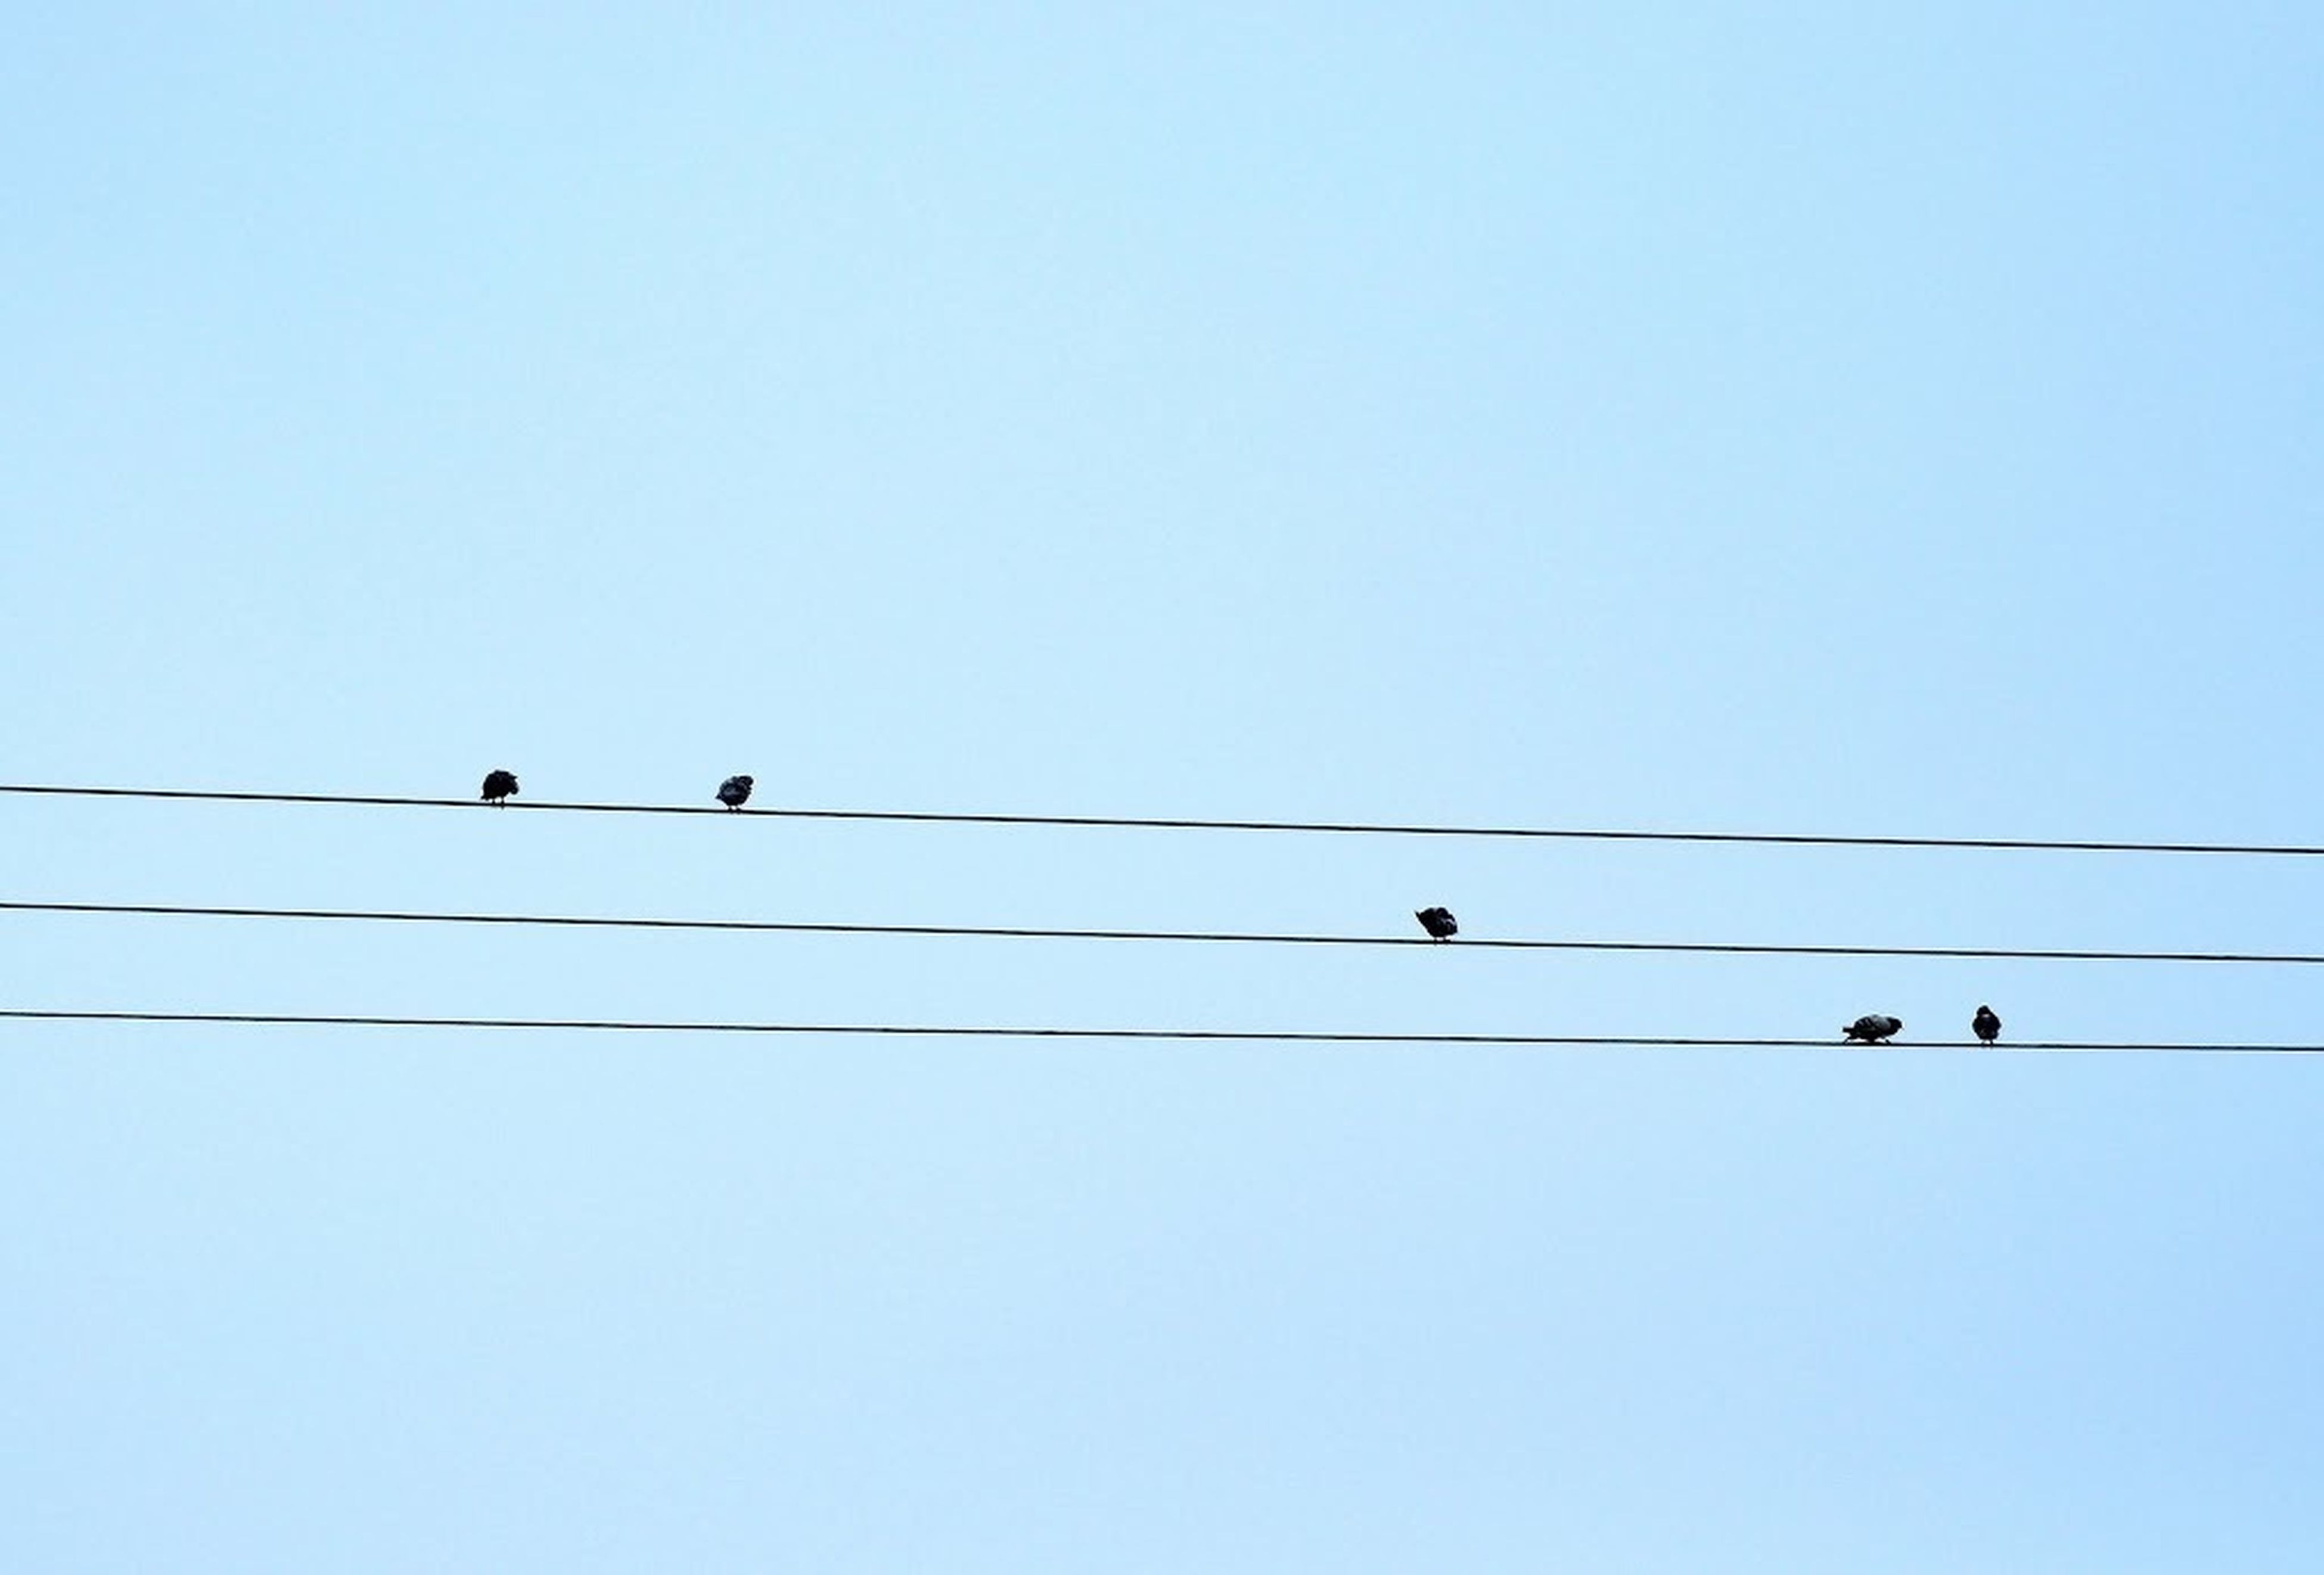 animal themes, bird, animals in the wild, wildlife, low angle view, clear sky, perching, power line, cable, connection, copy space, electricity pylon, one animal, silhouette, electricity, two animals, power cable, avian, power supply